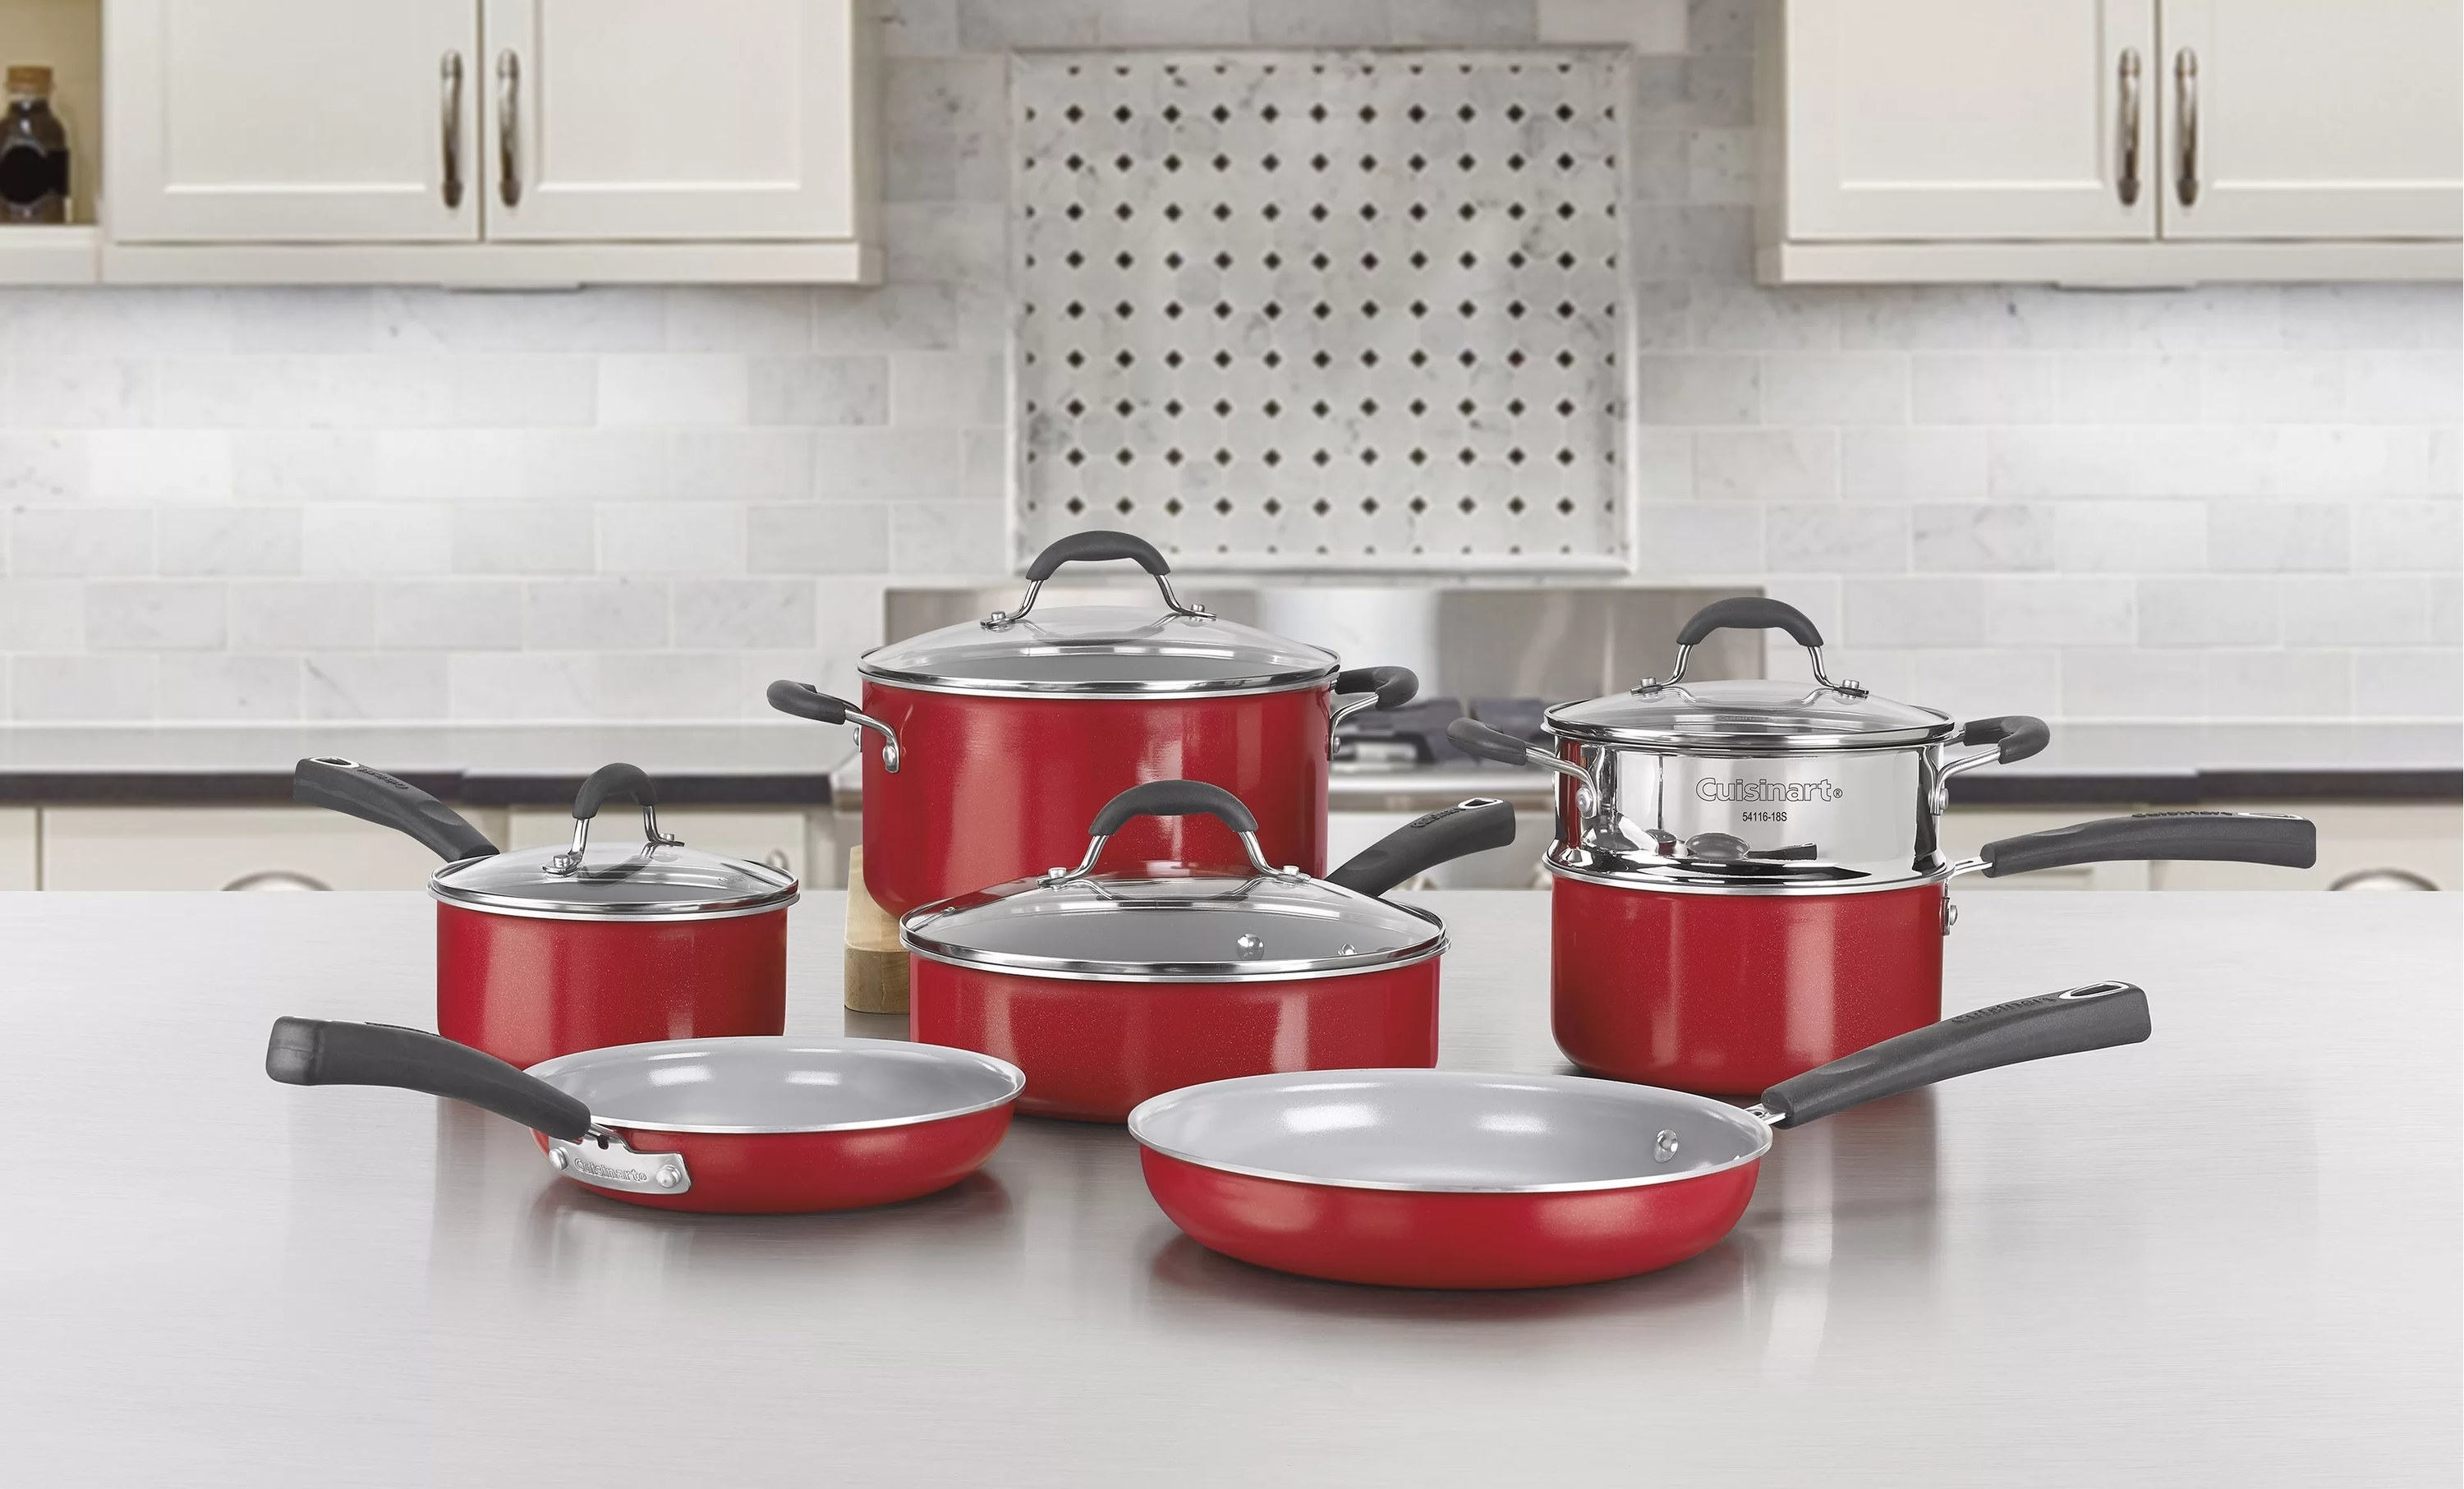 The 11-piece red and gray set on a kitchen counter